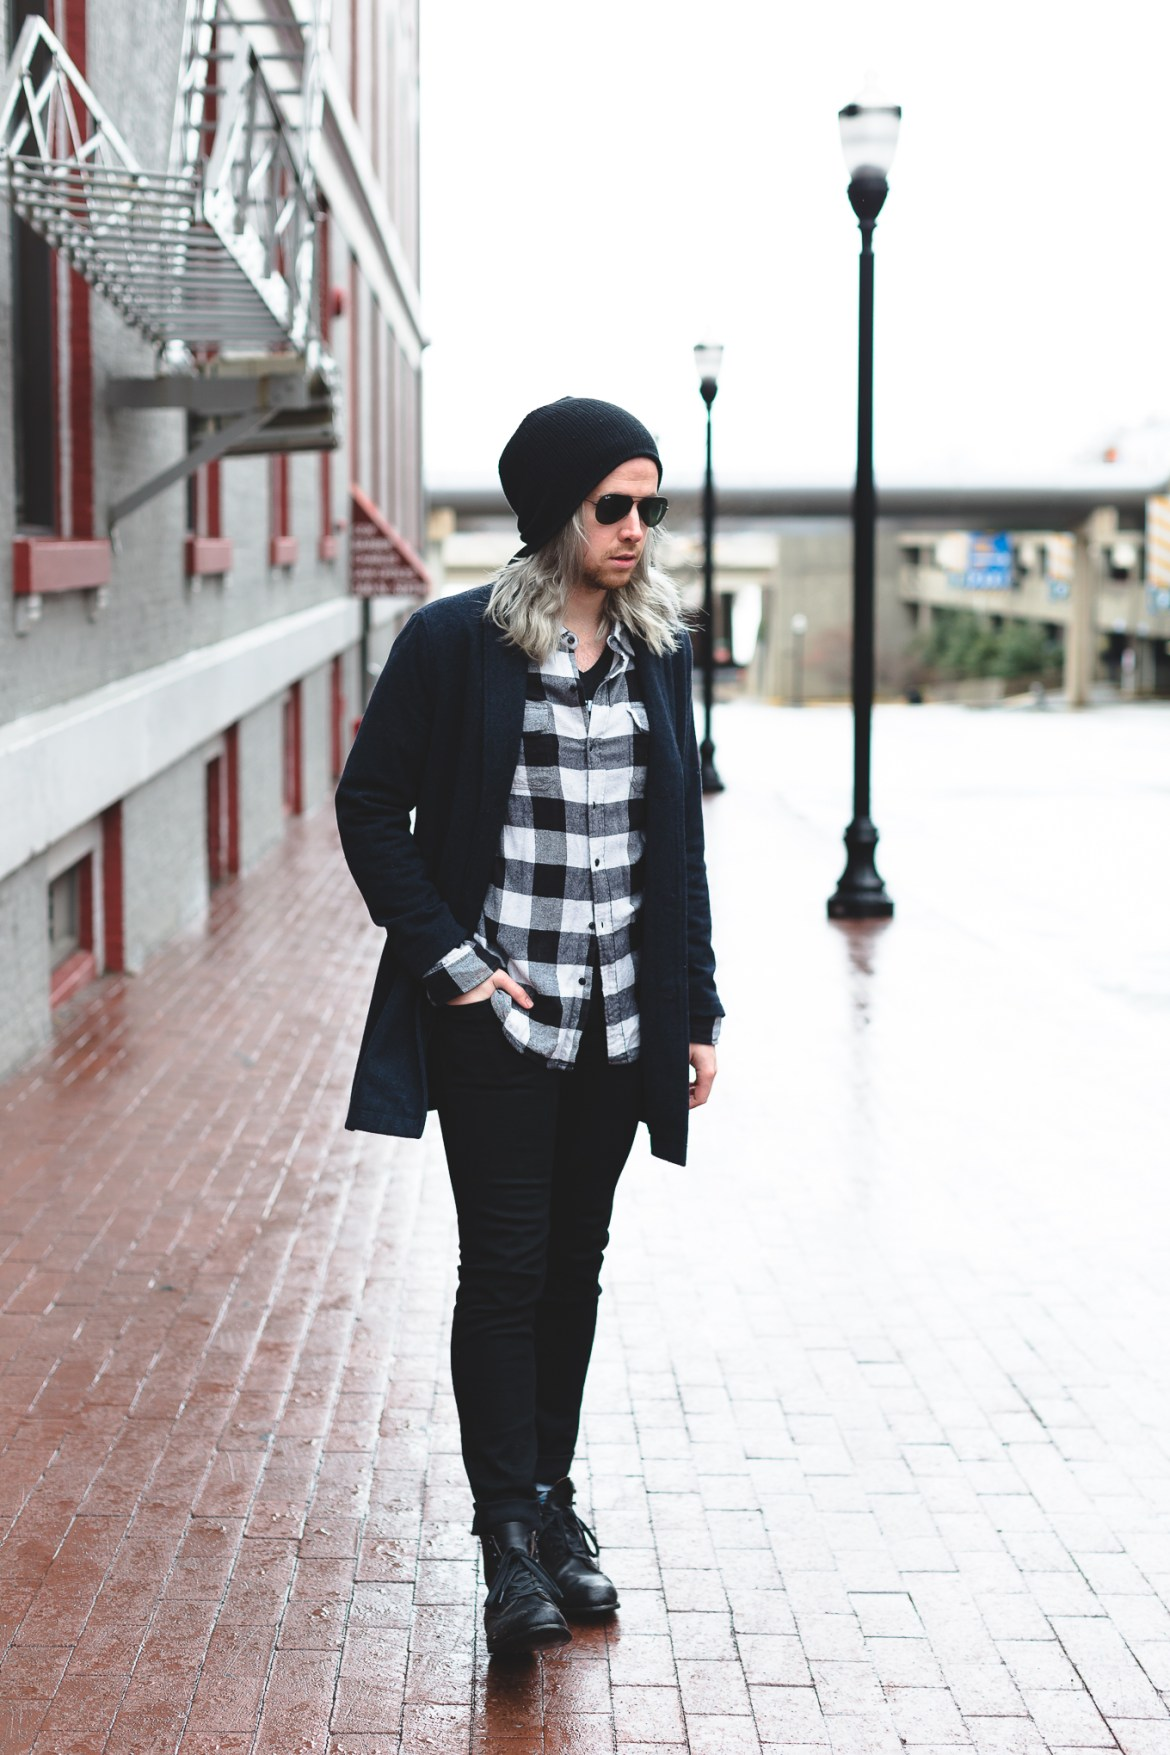 topman, mens fashion blog, mens fashion blogger, rag & bone, black skinny jeans for men